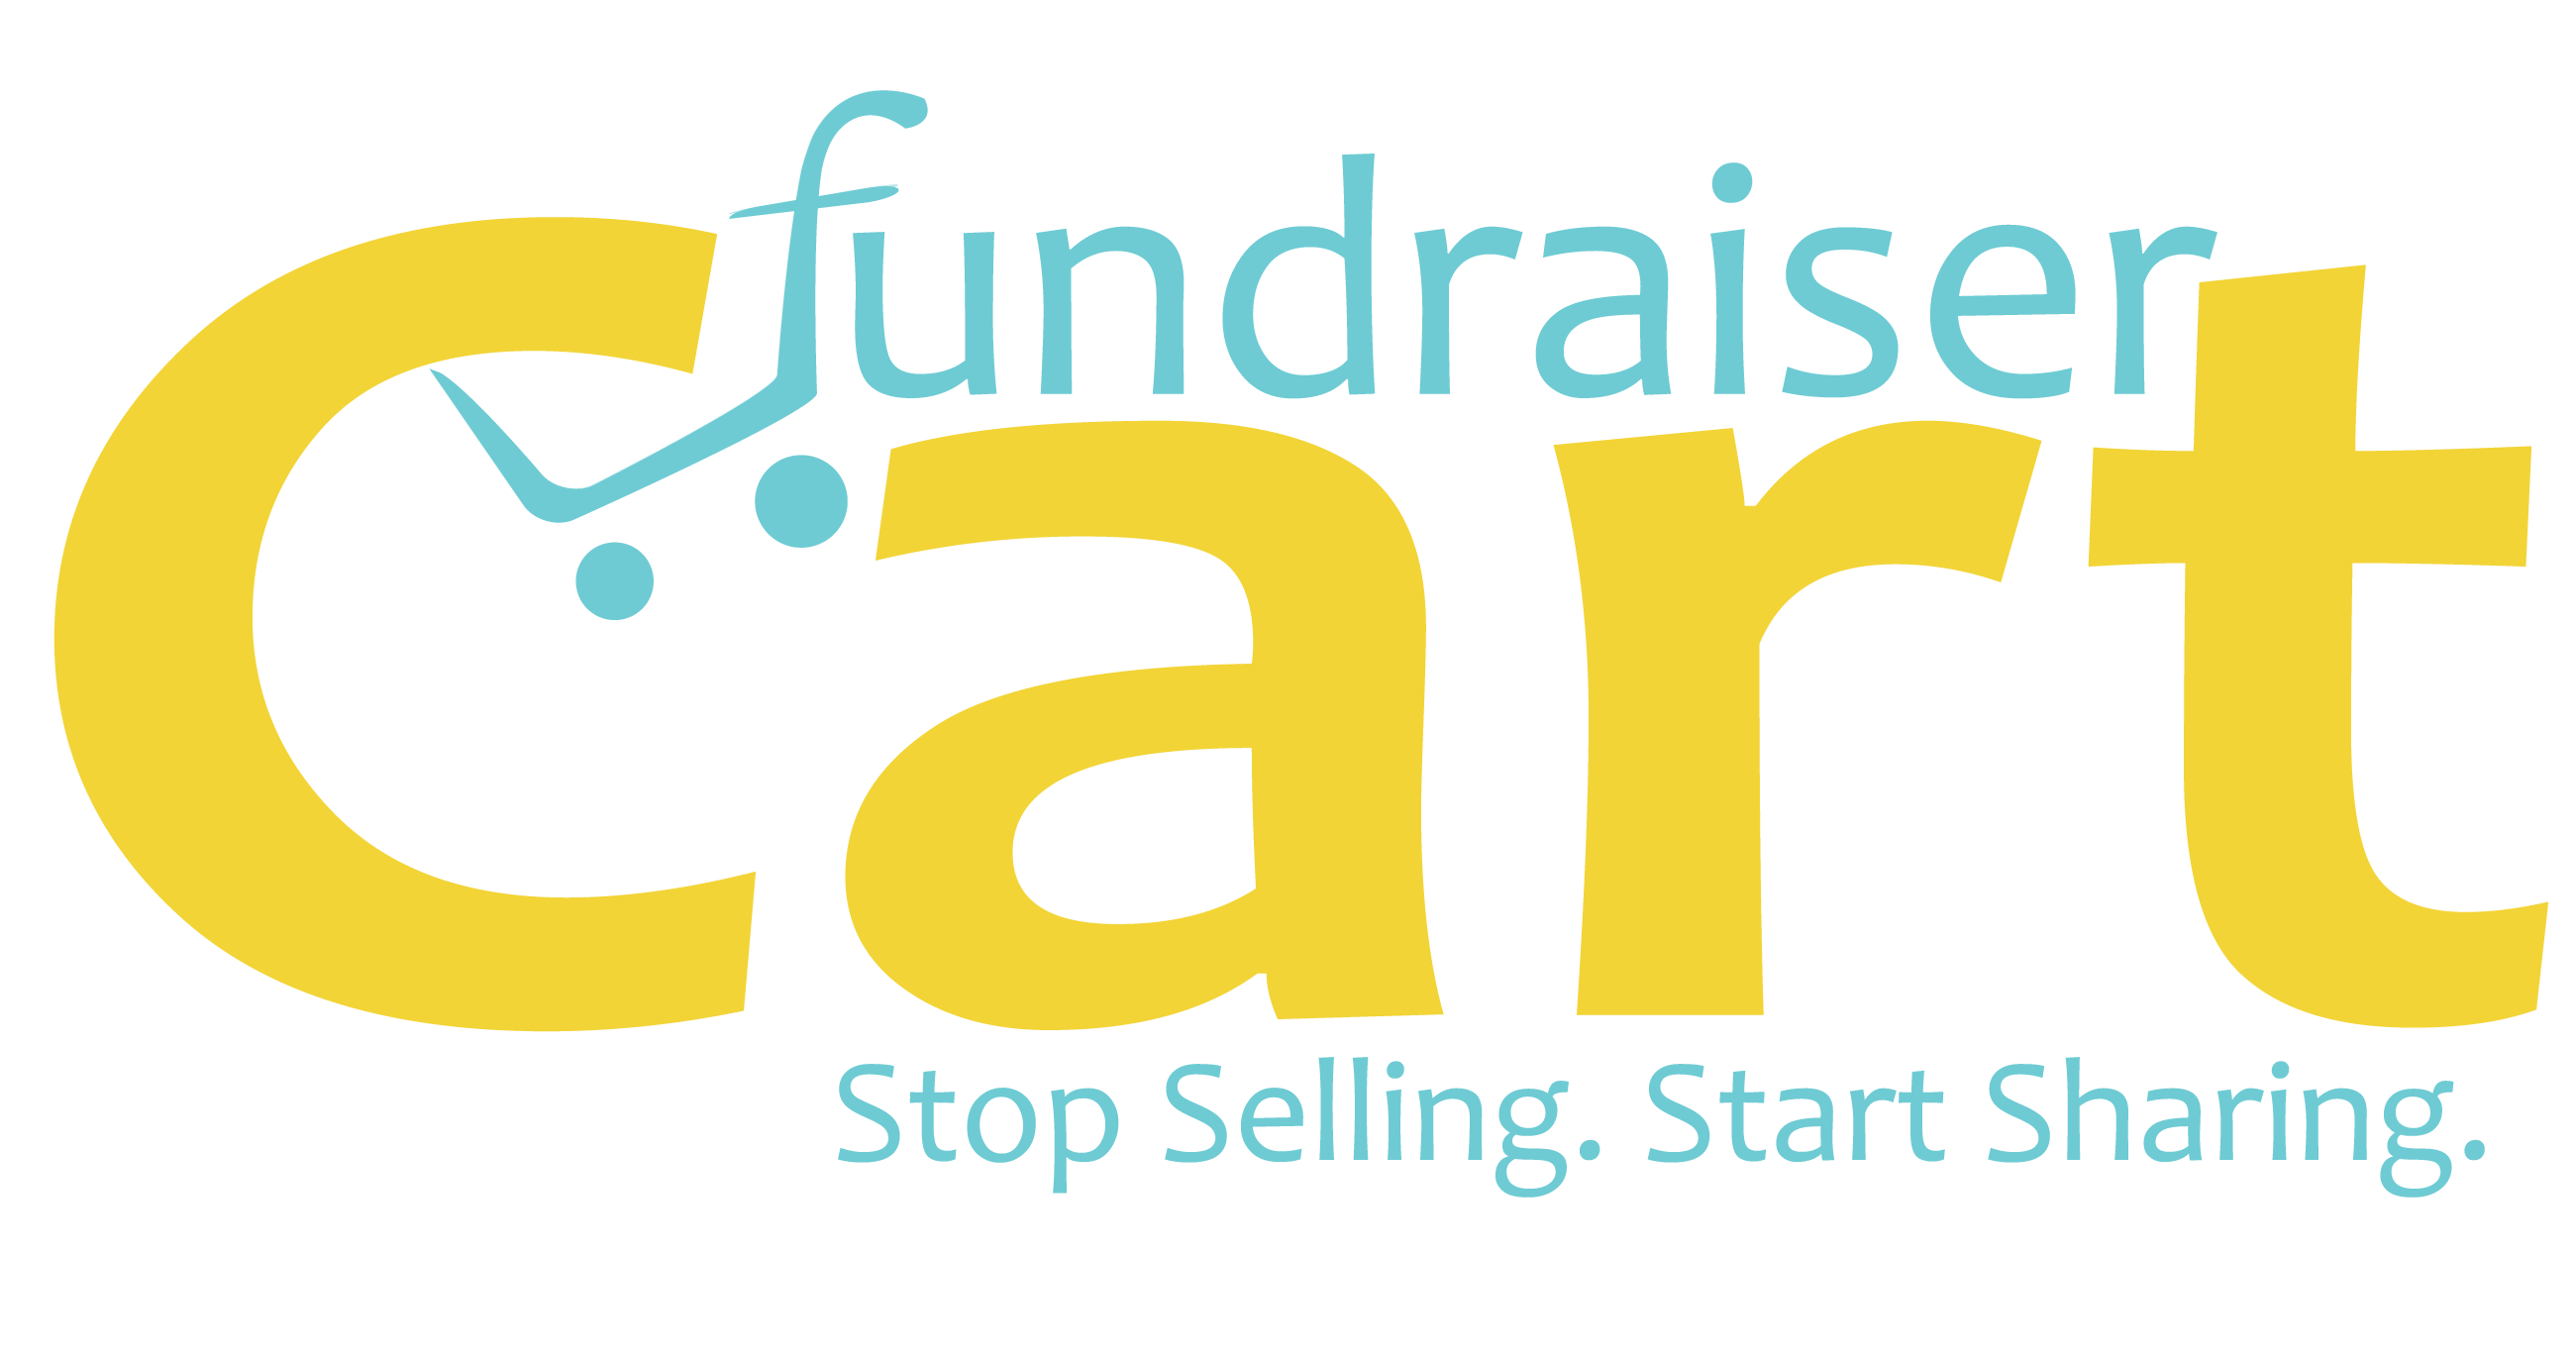 FundraiserCart Logo_Yellow_slogan